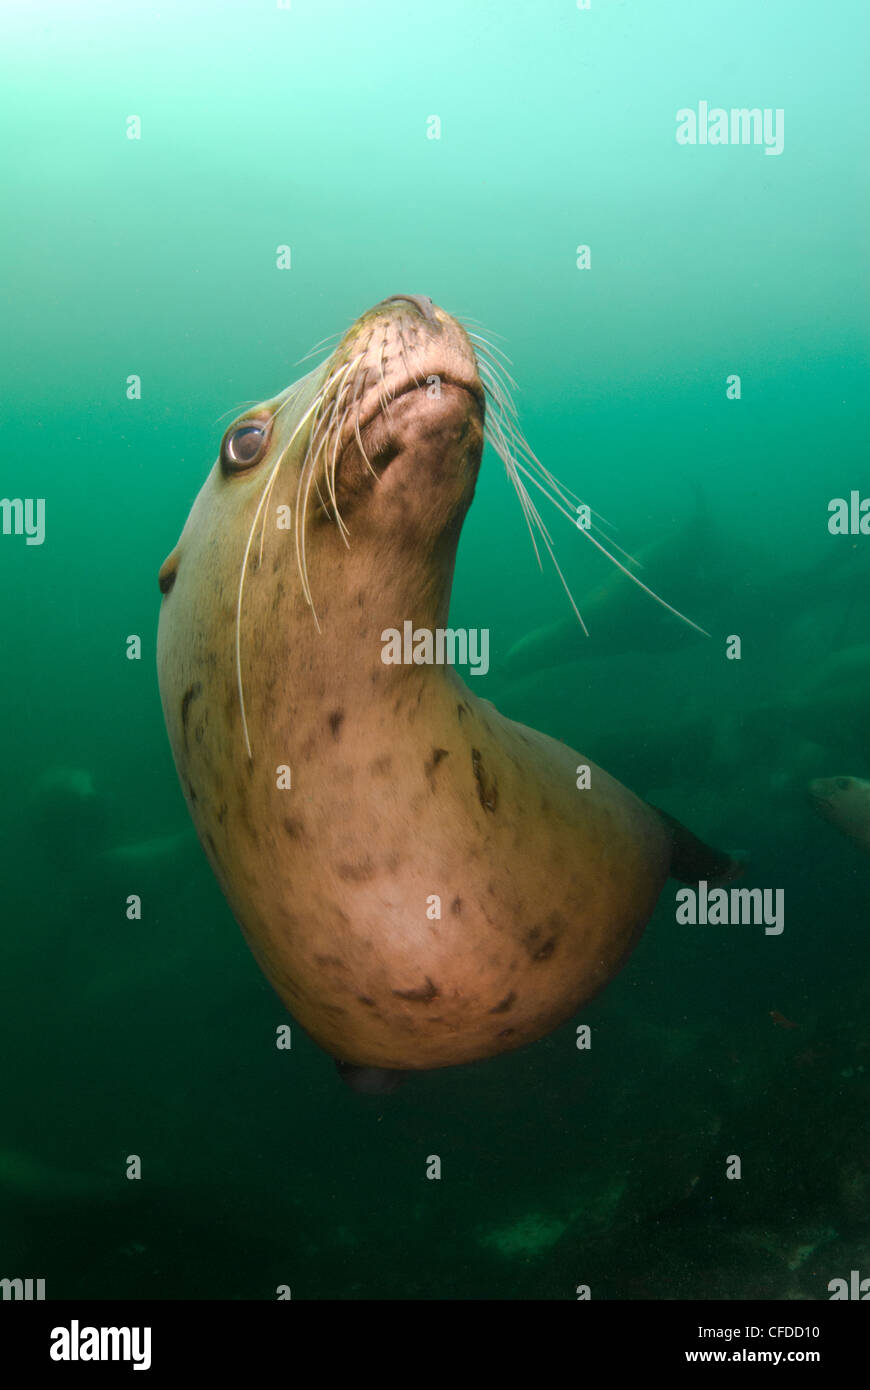 A playful sea lion underwater at Norris Rock, Hornby Island, British Columbia, Canada - Stock Image